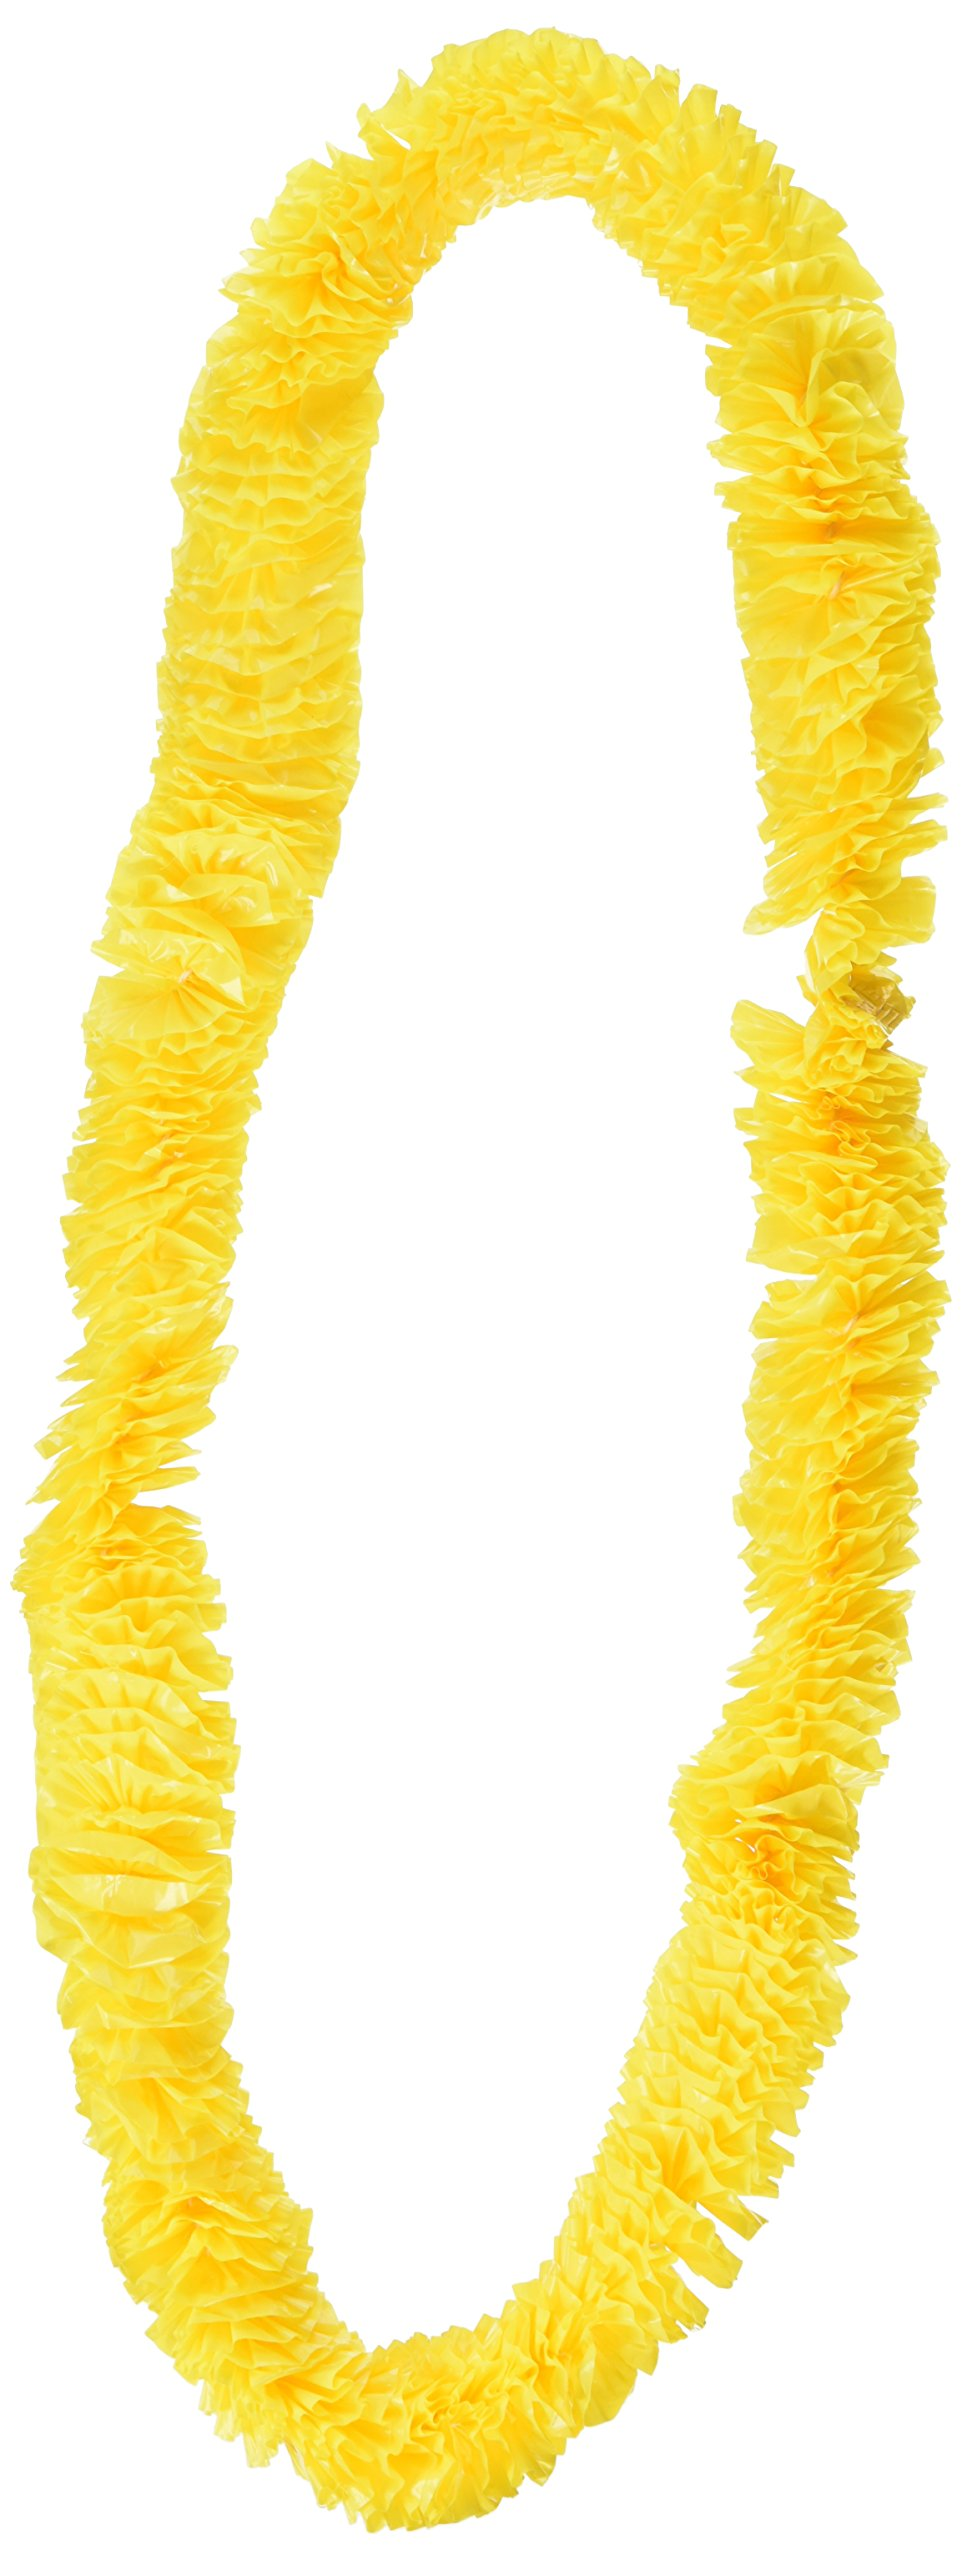 Beistle 66355Y50 50-Pack Soft-Twist Poly Leis Party Favors, 1-1/2 by 36-Inch